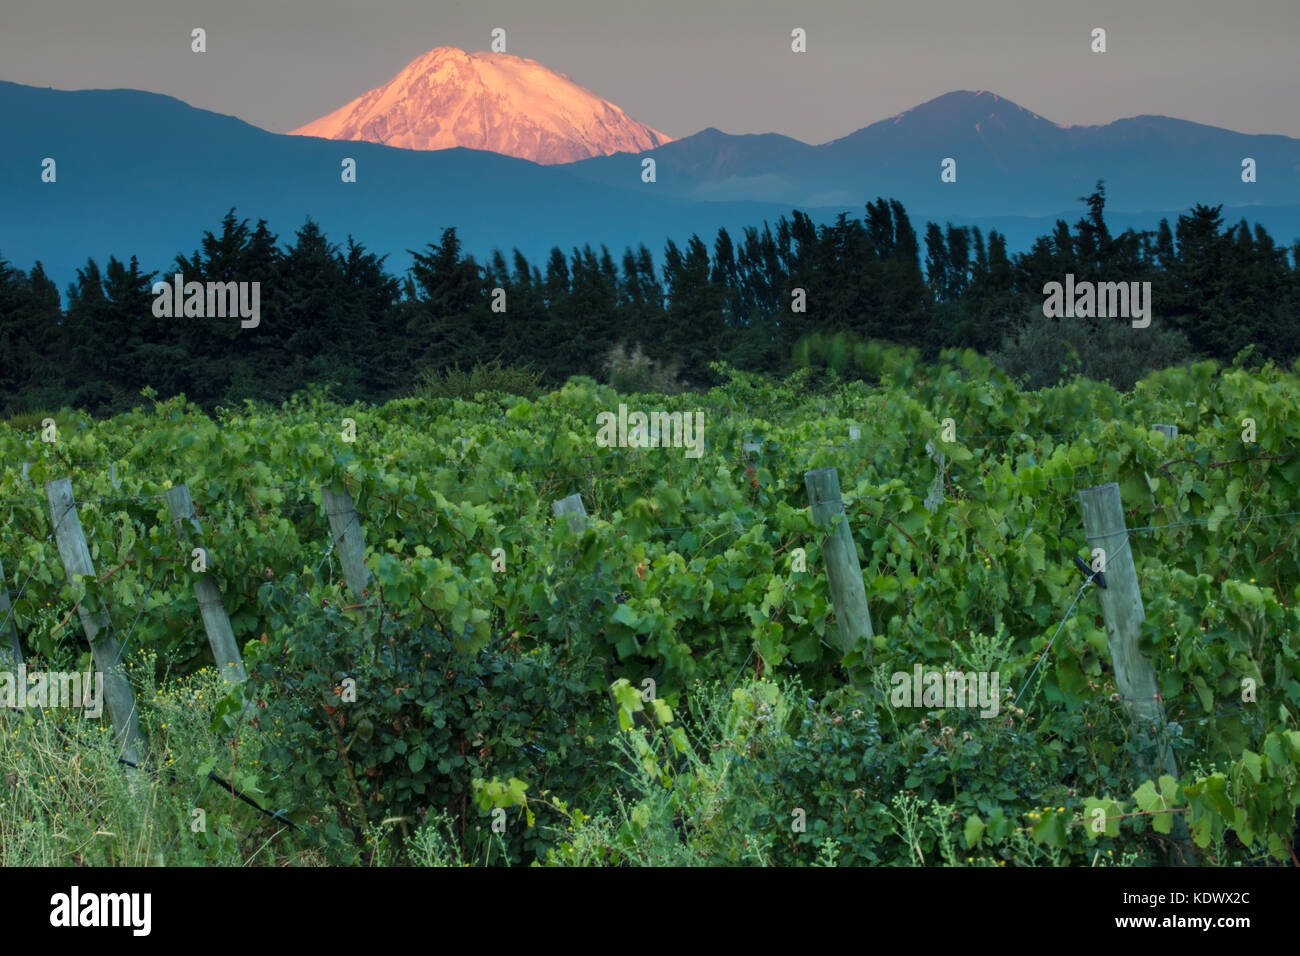 First light on Volcan Tupungato from the vineyards of the Uco Valley, Mendoza Province, Argentina - Stock Image